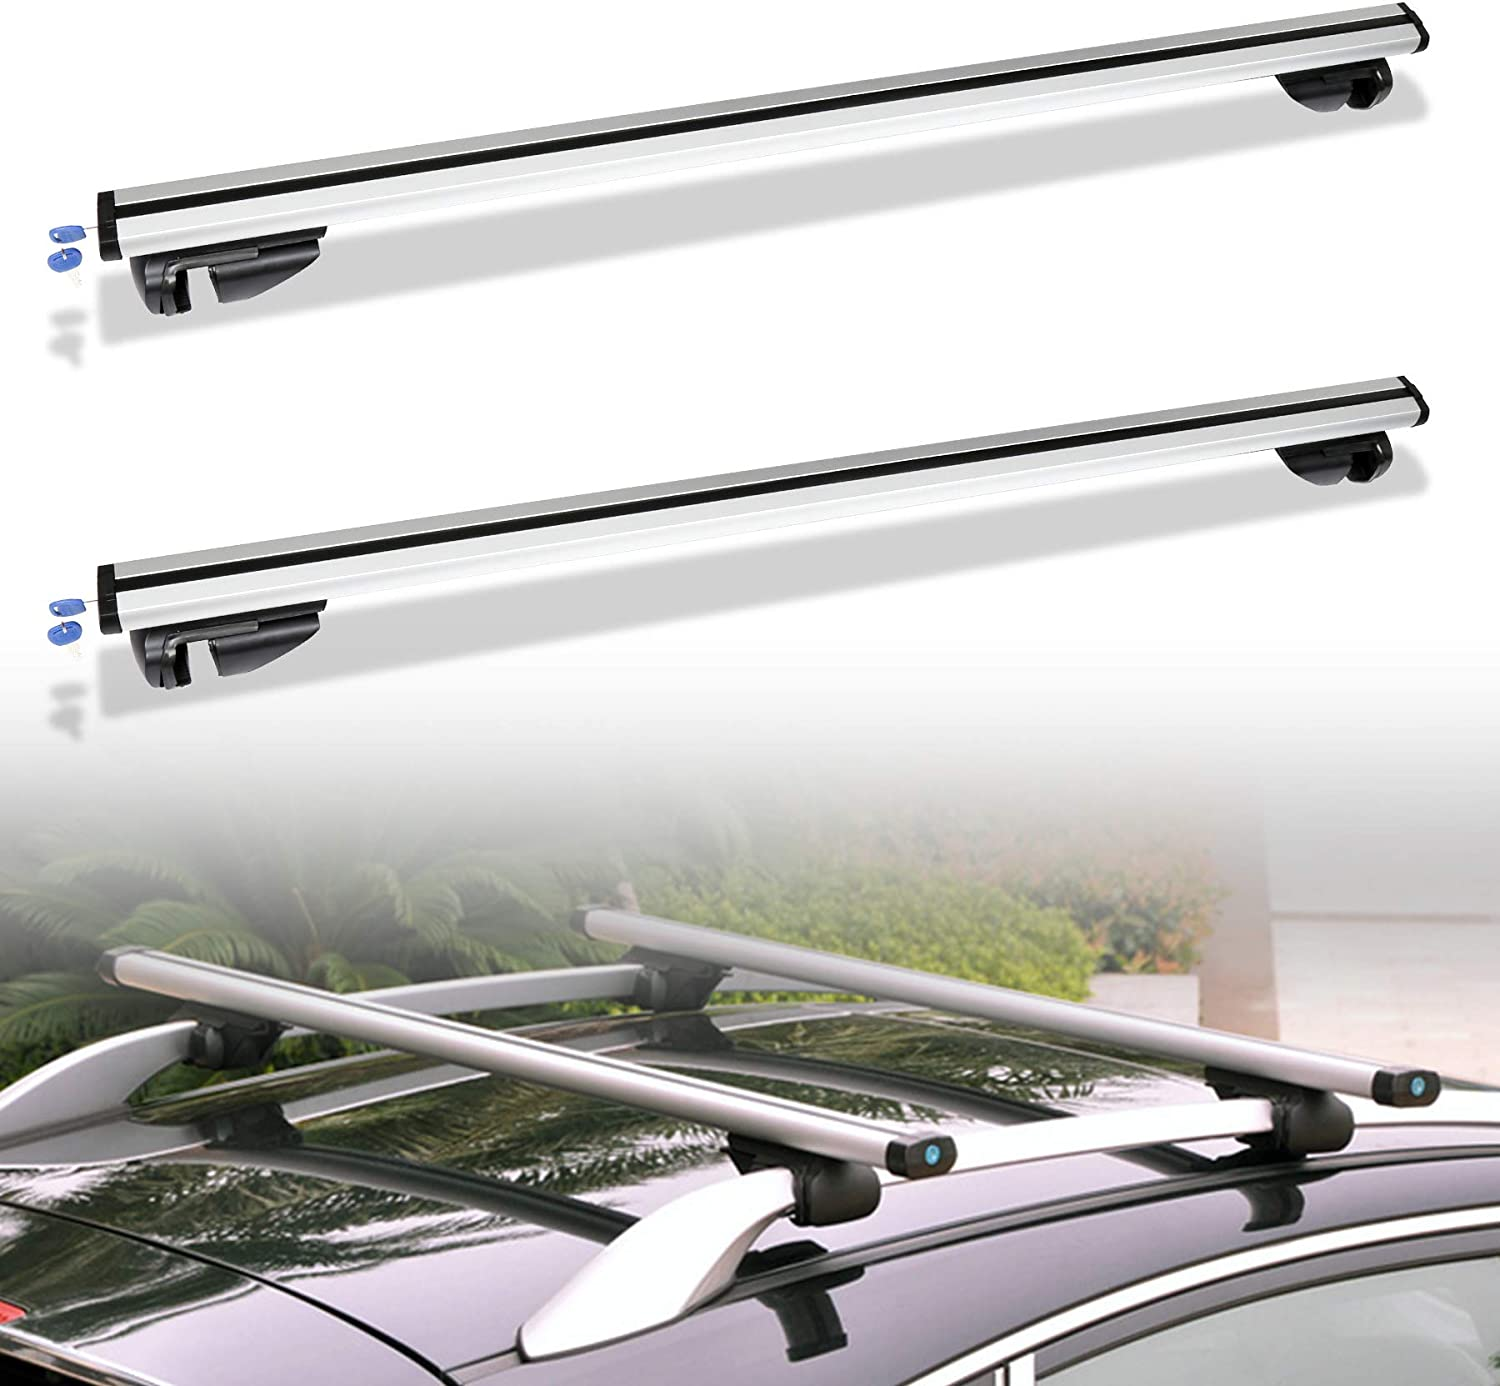 suv Hengda L124 up to 150kg lockable 2 Roof Rail Bar Universal Aluminium carrier for off-road vehicles